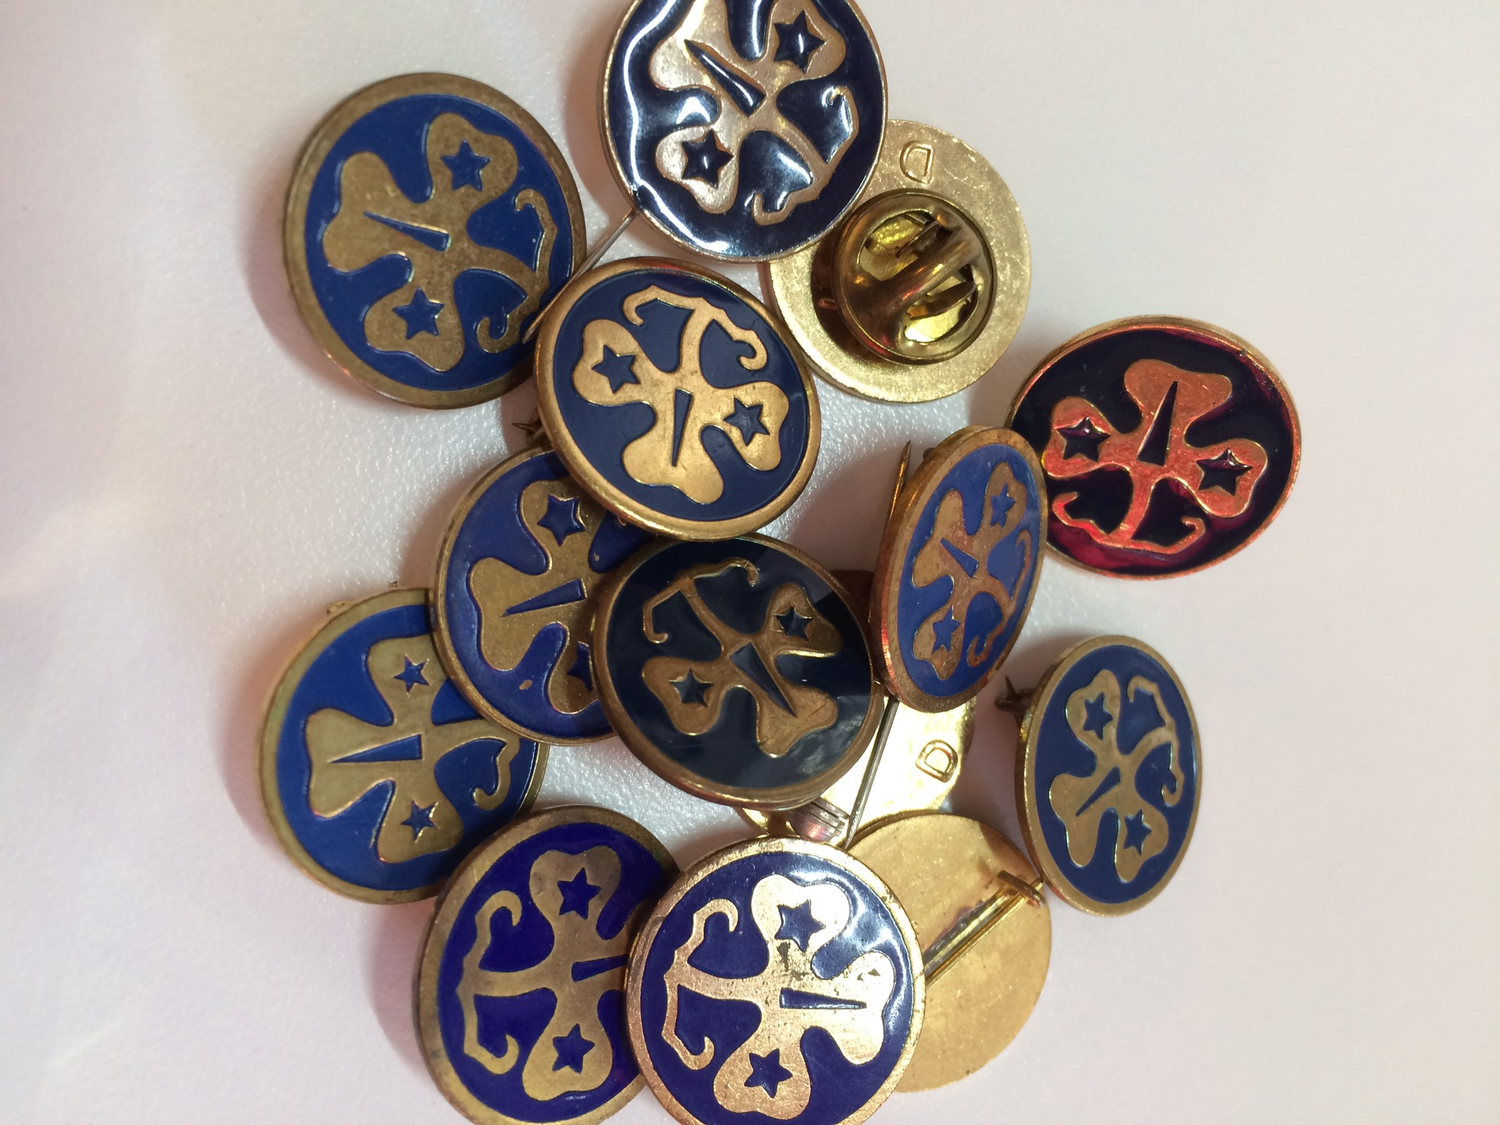 WAGGGS vintage pin